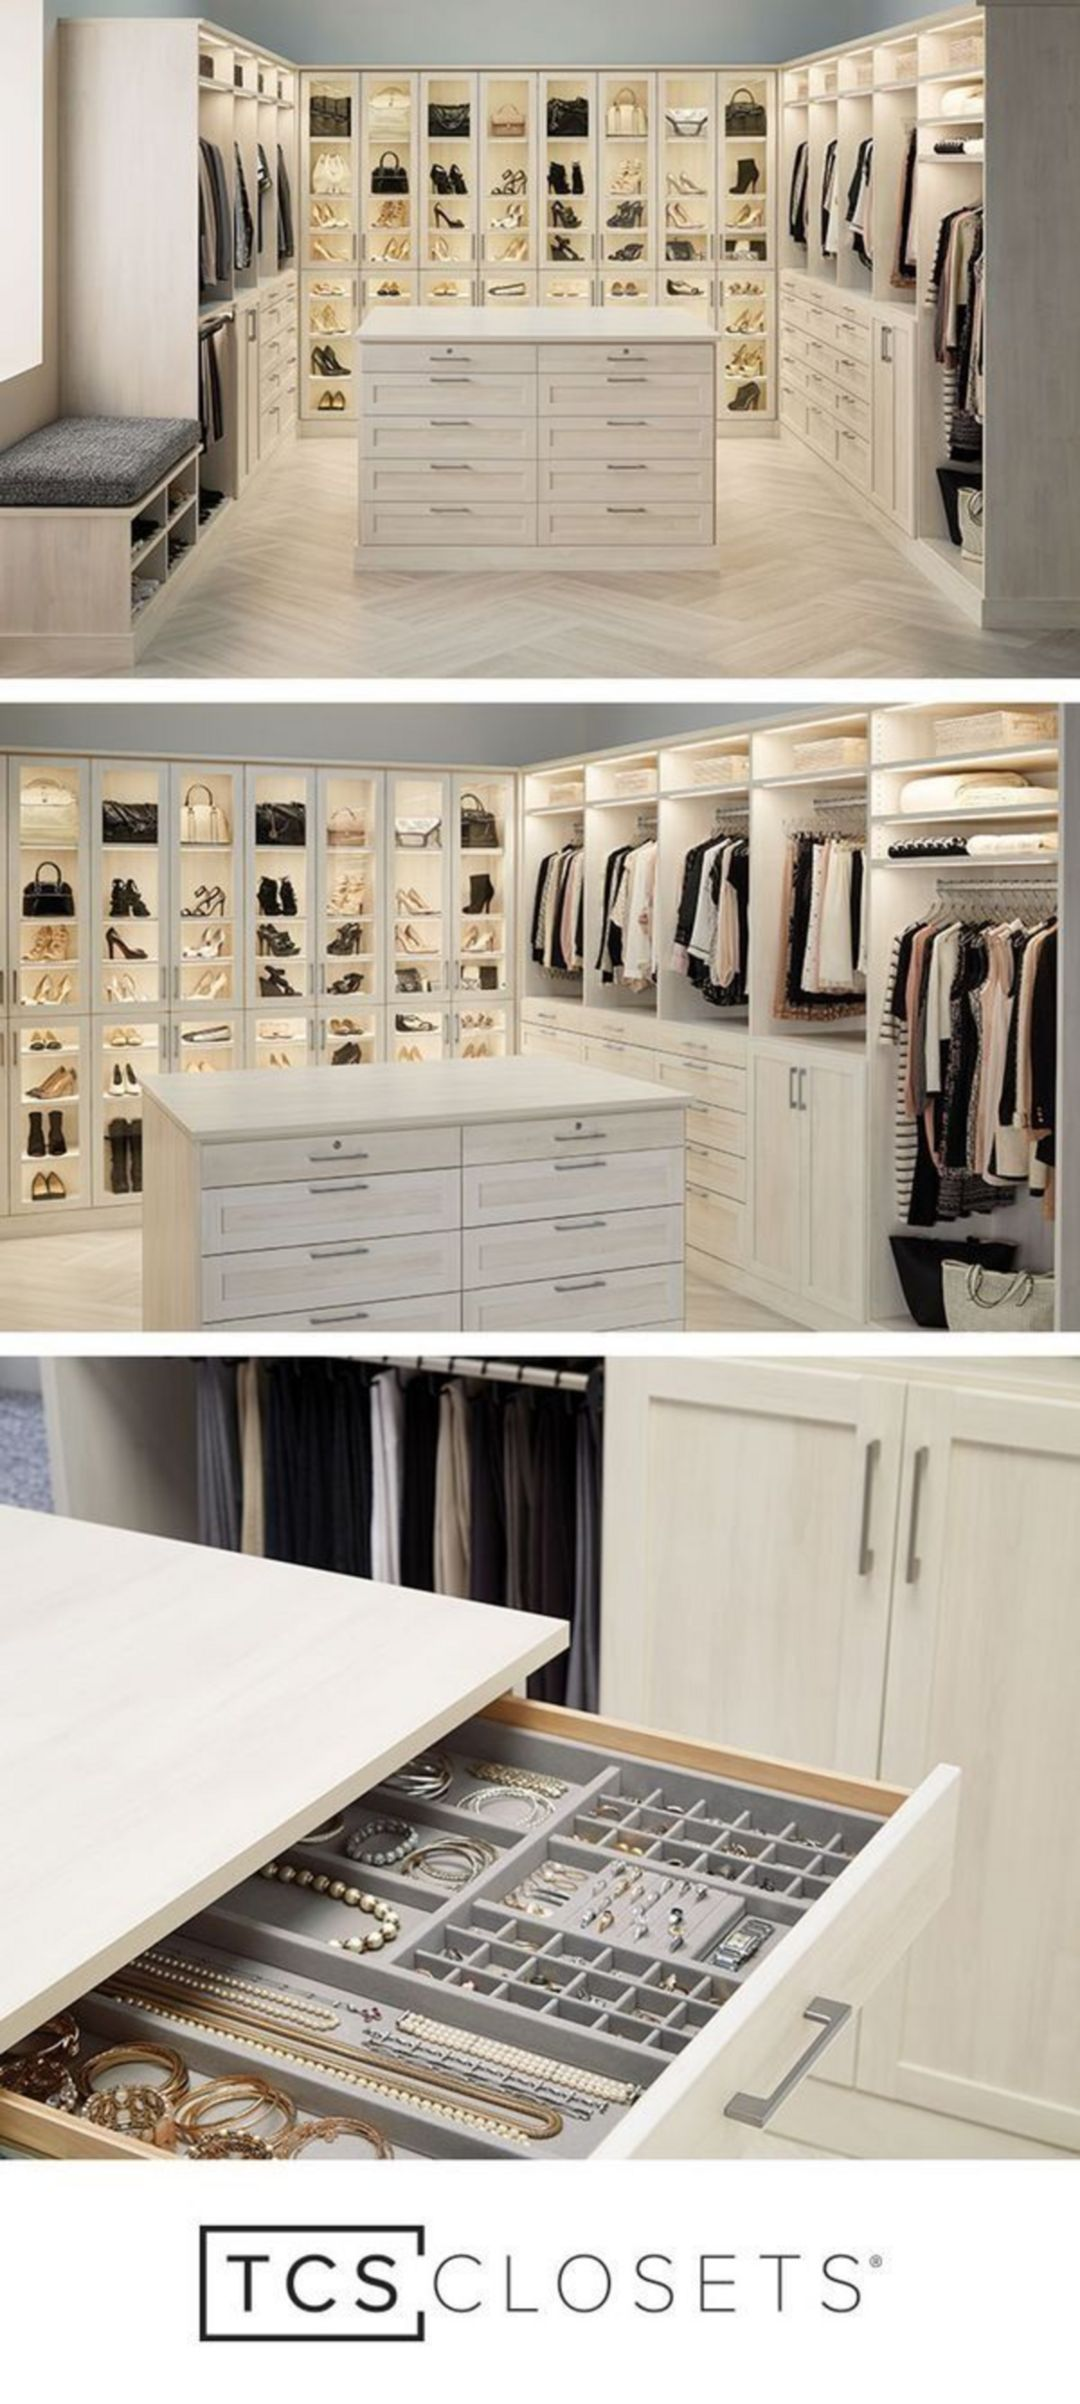 20 Stunning Closet Room Design Ideas For Beautiful Storage #dreamclosets